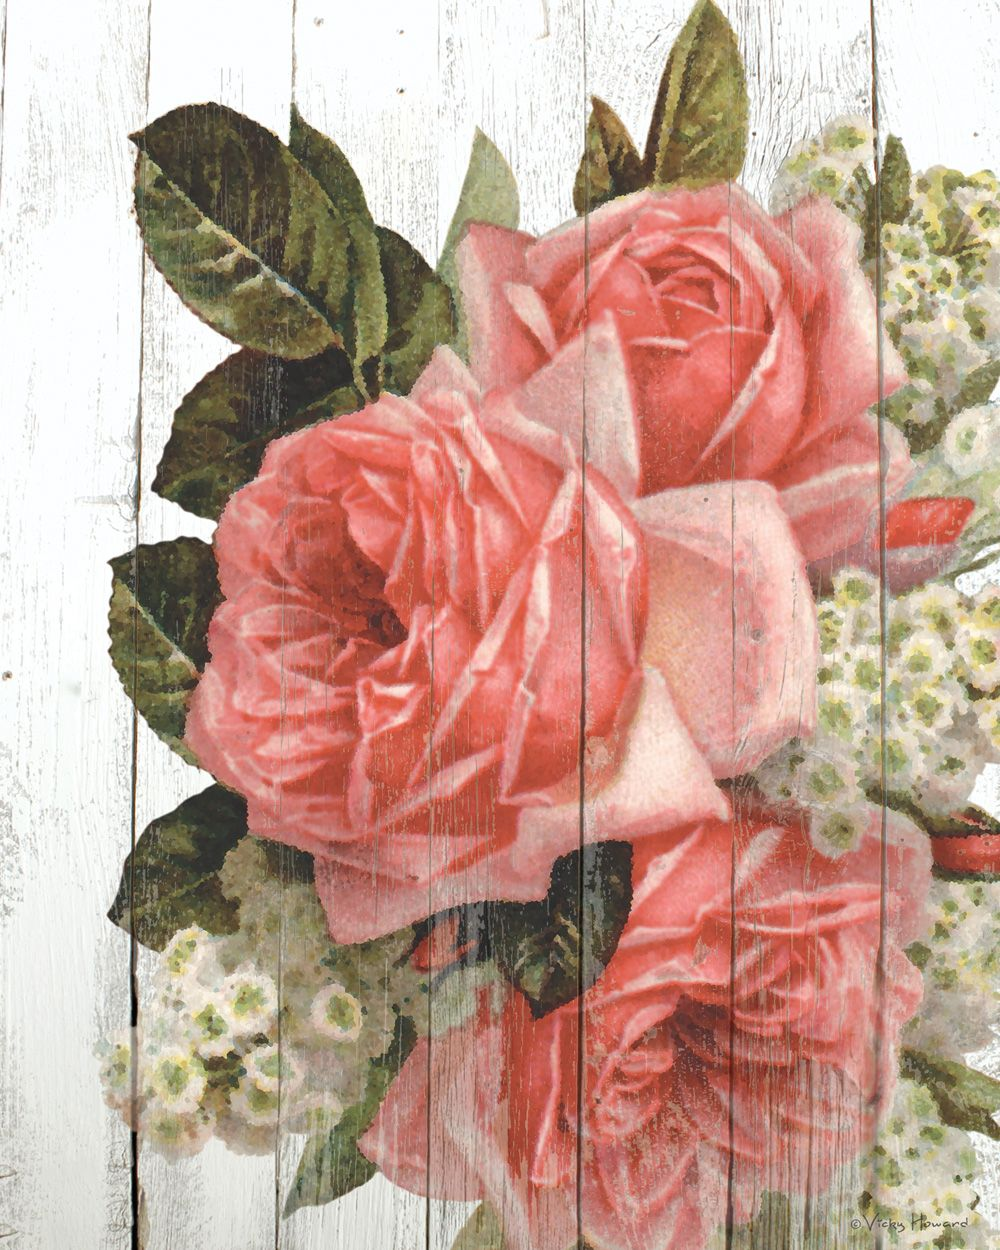 Vintage Rose Free Printable On Aged Barn Wood Background Shabby Chic Diy Projects Shabby Chic Diy Vintage Flower Backgrounds